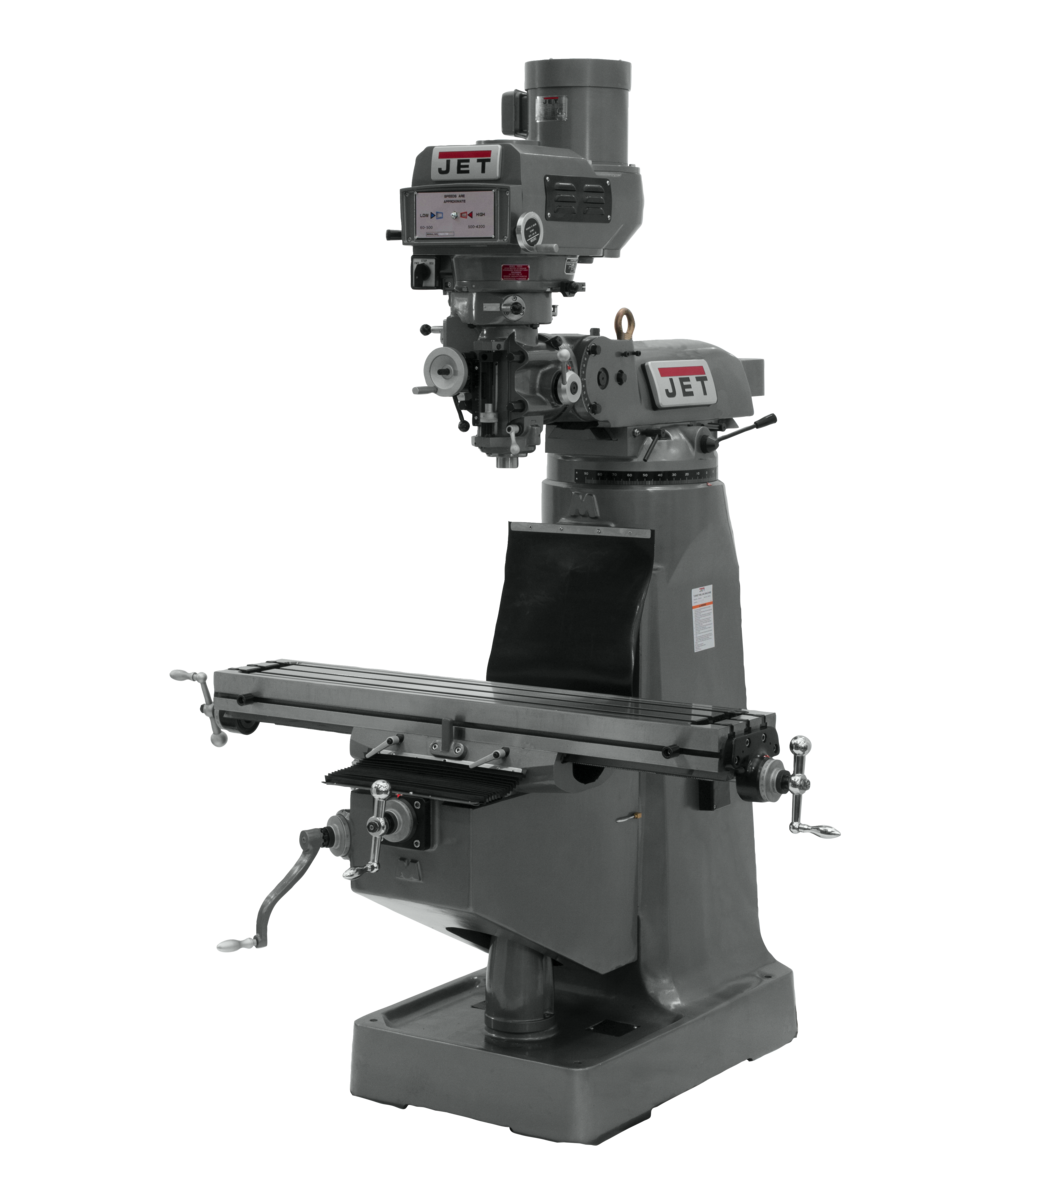 JTM-4VS Mill With 3-Axis Newall DP700 DRO (Quill)